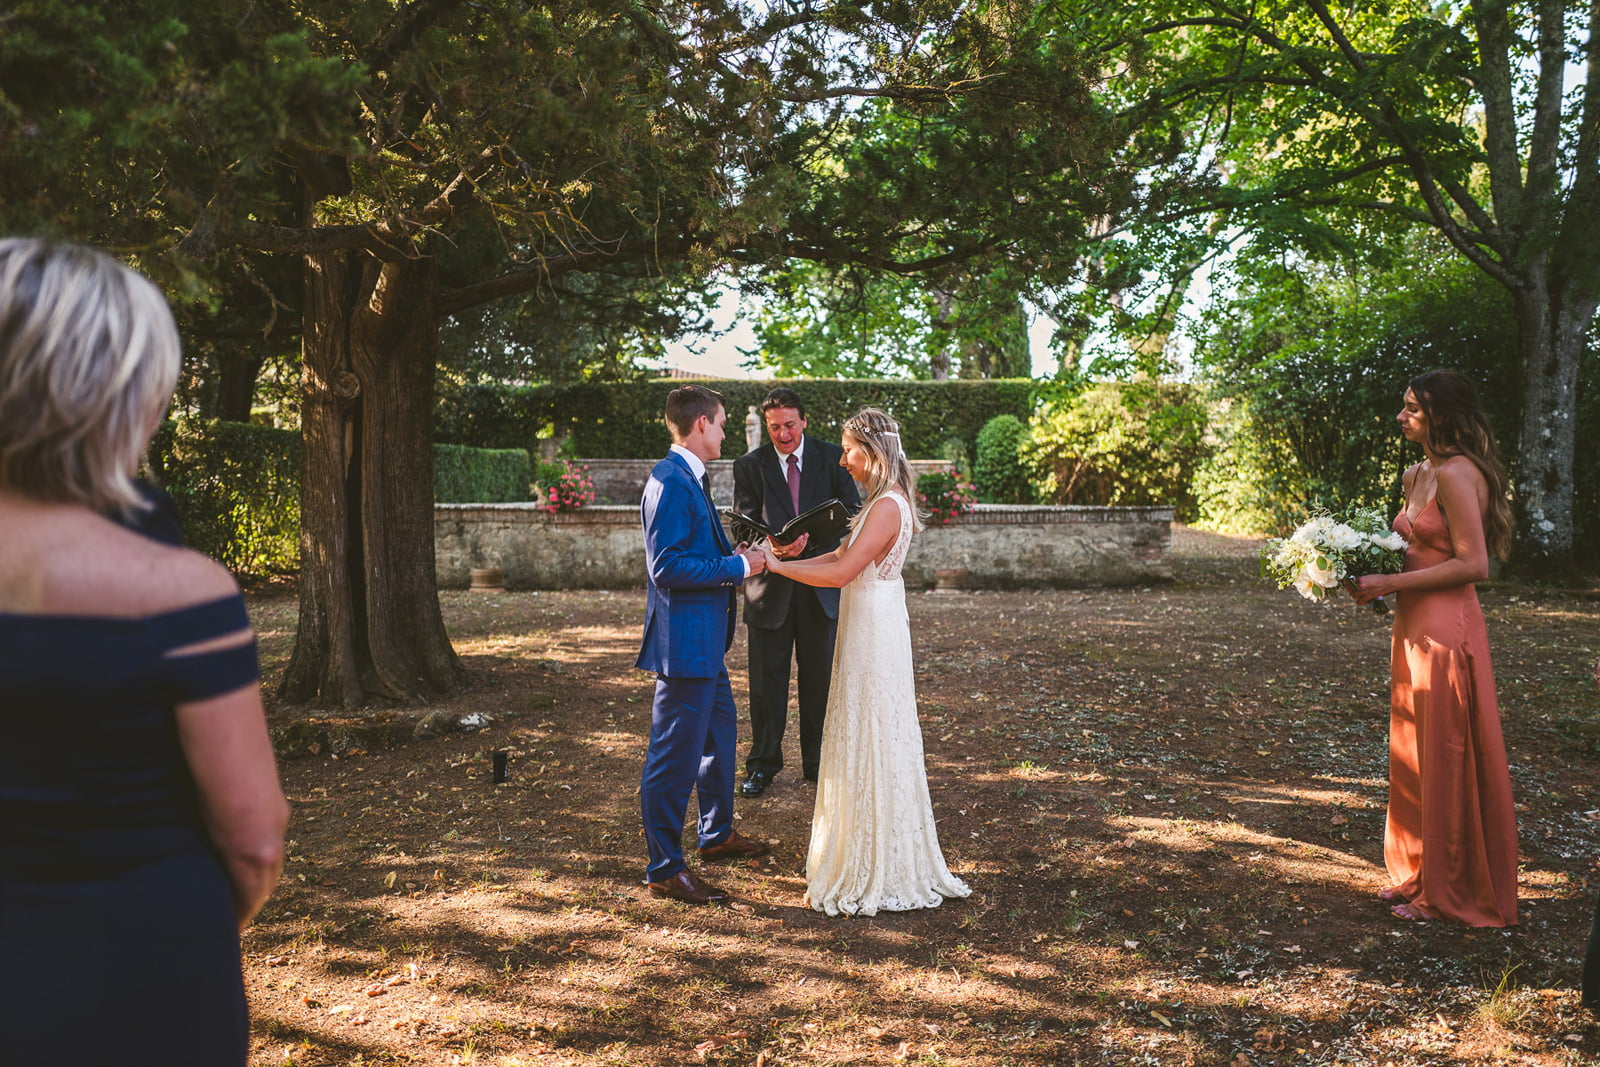 A+L Wedding at Montechiaro, Siena by Federico Pannacci 51